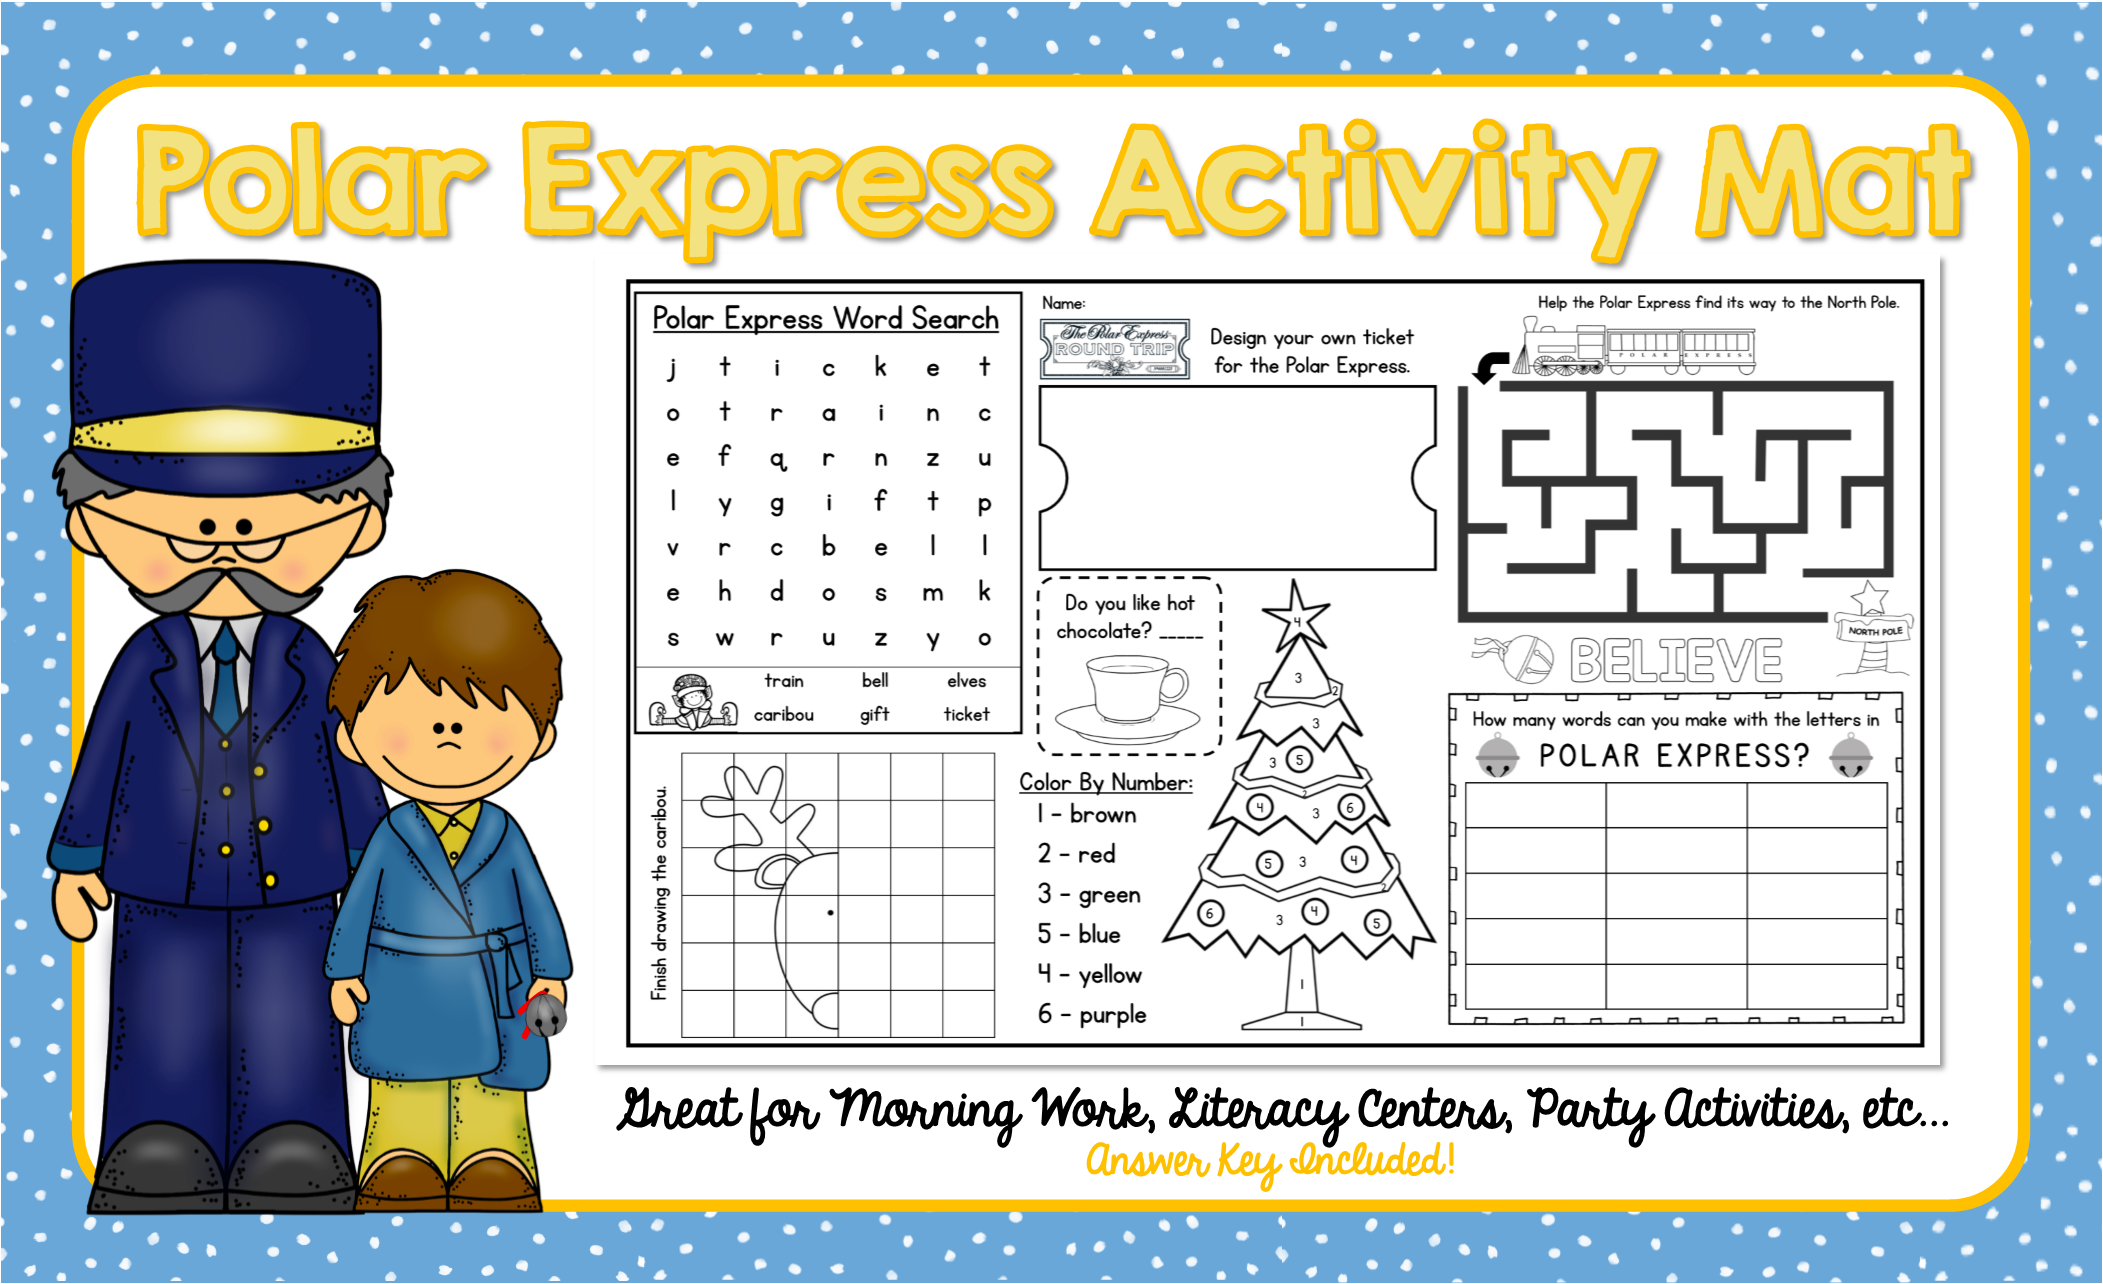 Polar Express Activity Mat A Page Full Of Fun Polar Express Activities Polar Express Activities Polar Express Activity Mat